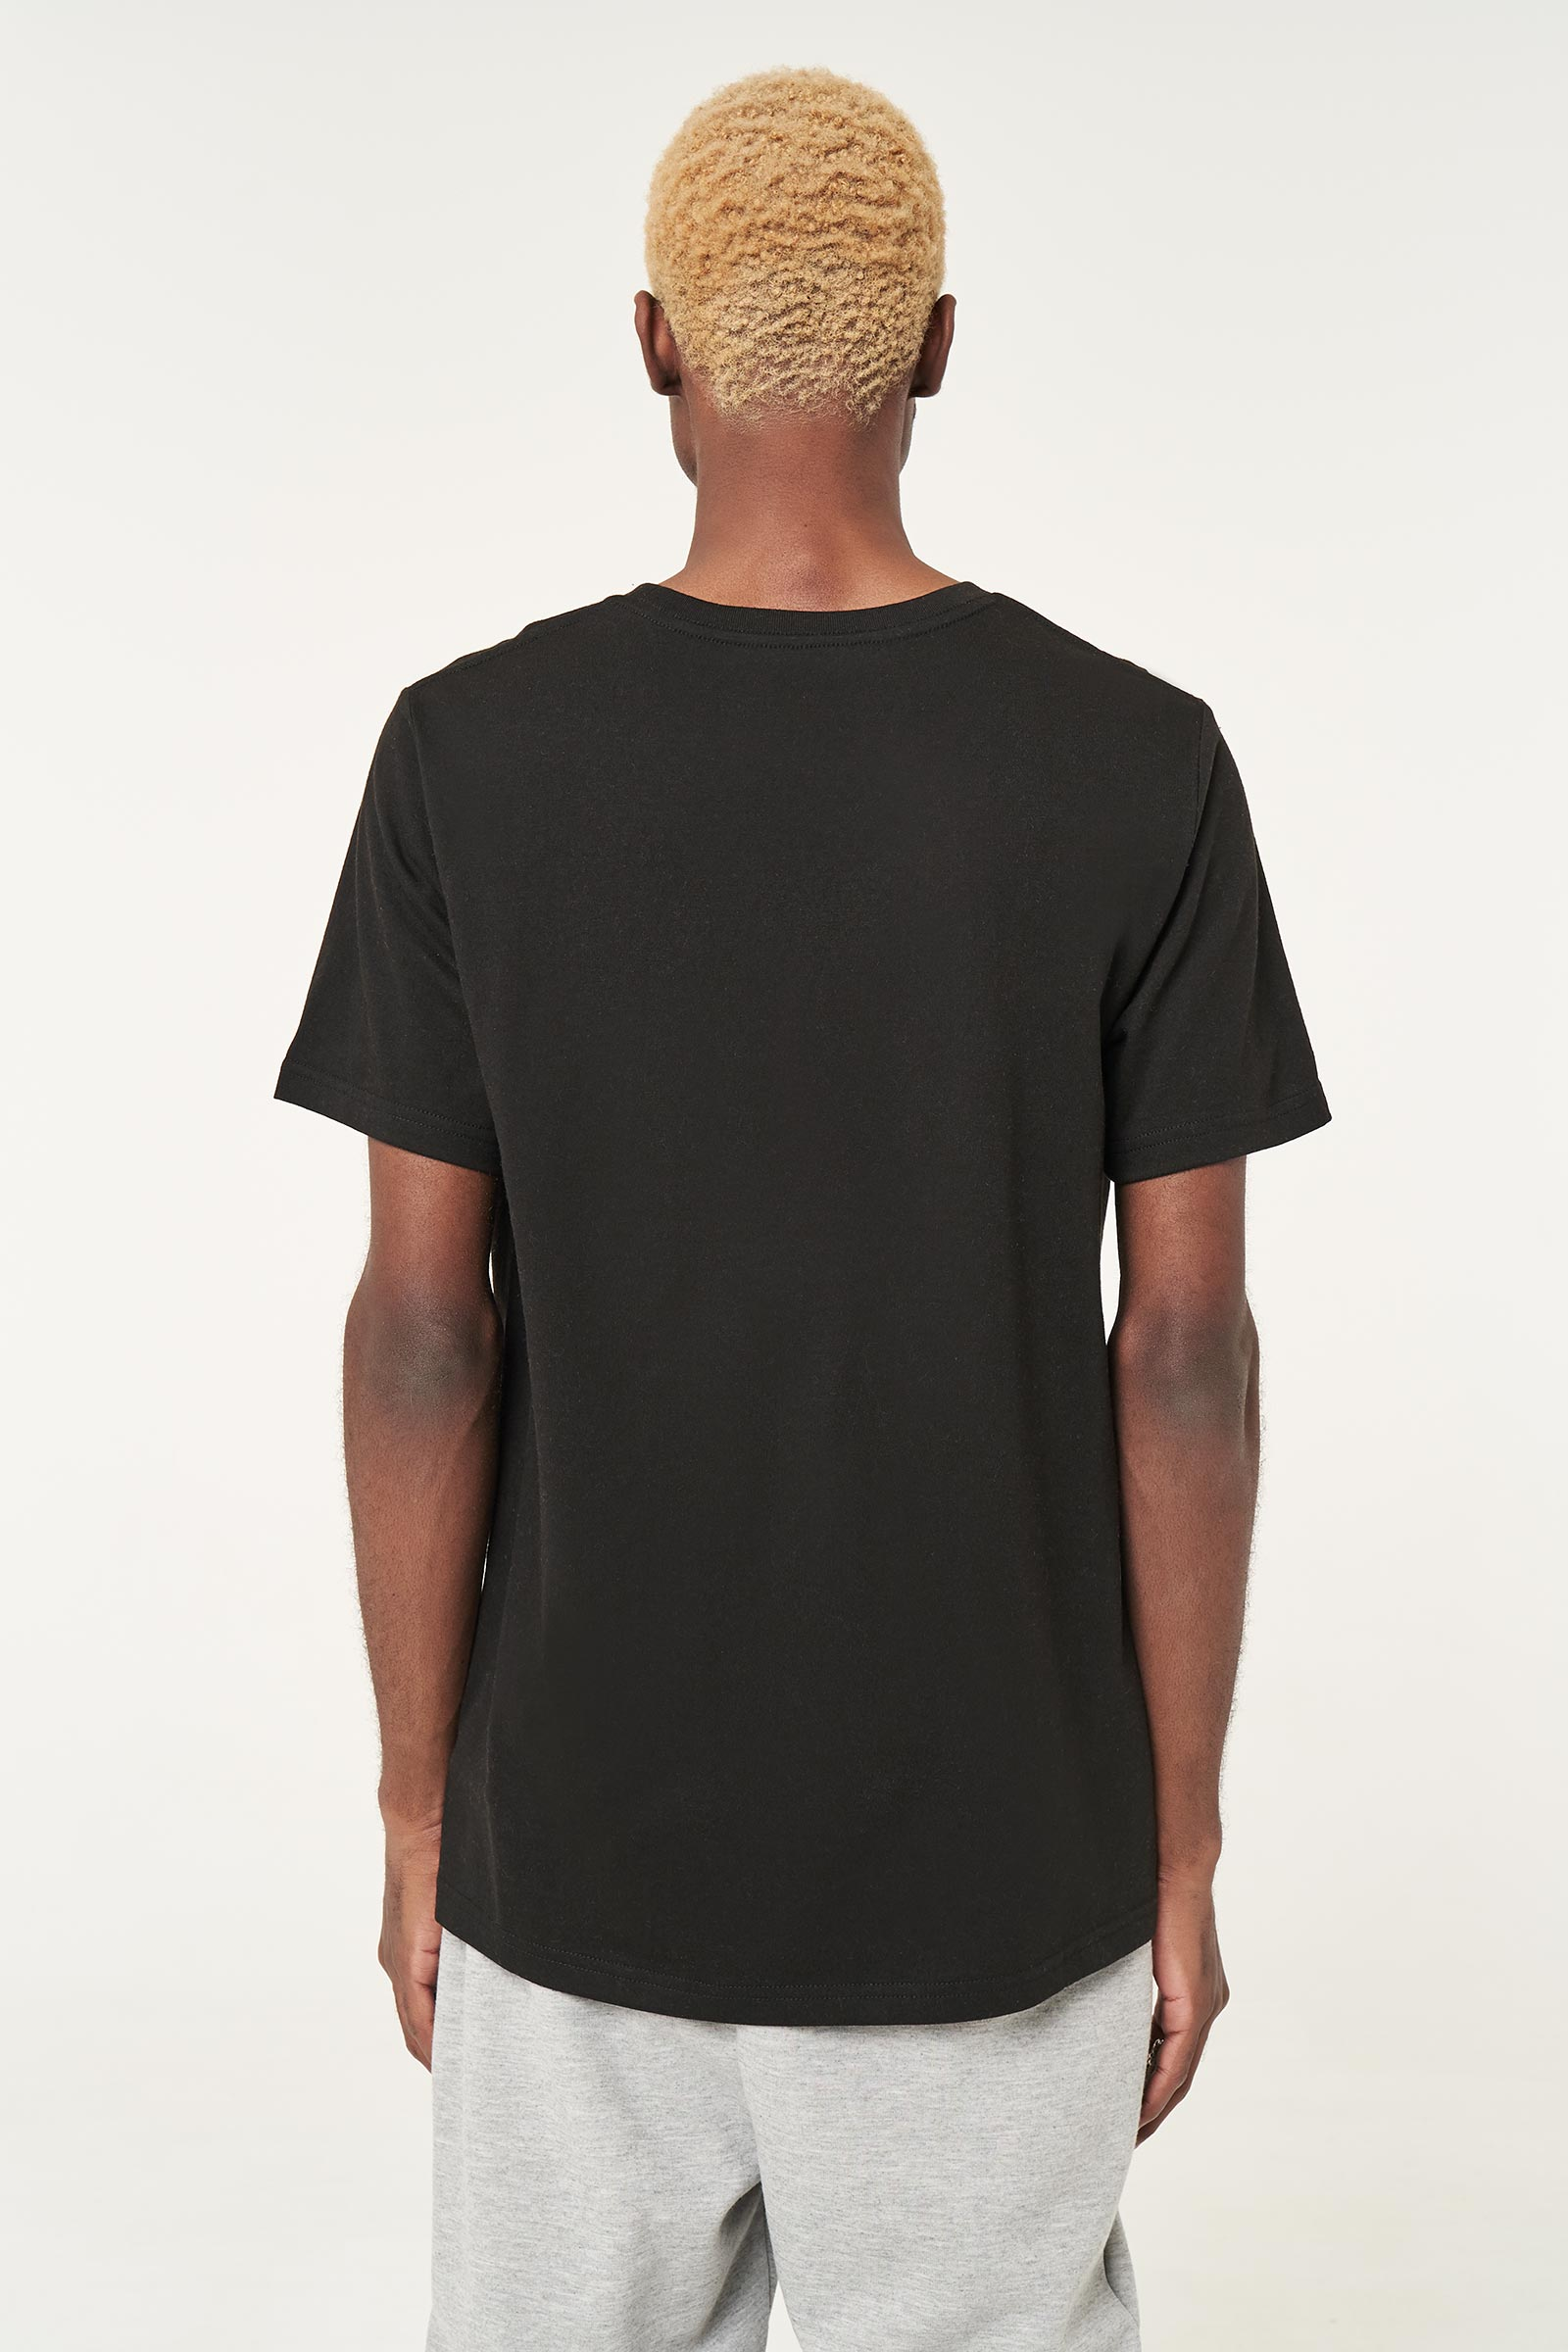 The Perfect Tee for Men